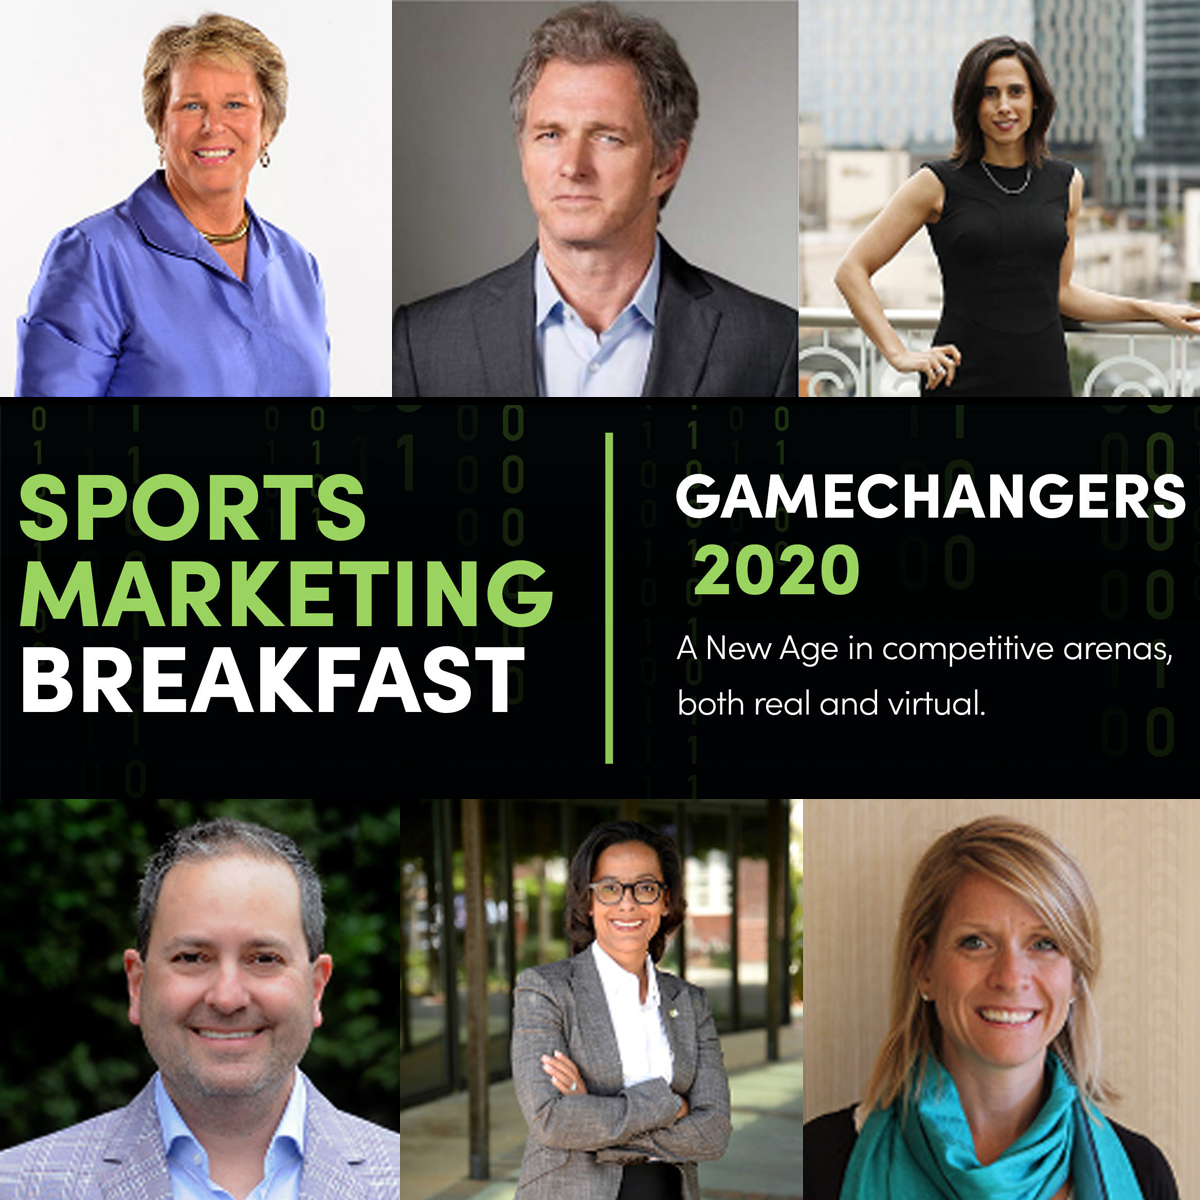 Join our Virtual Sports Marketing Breakfast: Learn about the state of sports in L.A. with brand marketers, data gurus, and tech stars who helped lead the transformation of the fan experience in a new age of social distancing. Tickets: https://t.co/q8dpCtFPwd #sports #marketing https://t.co/HVbVLgBSWB